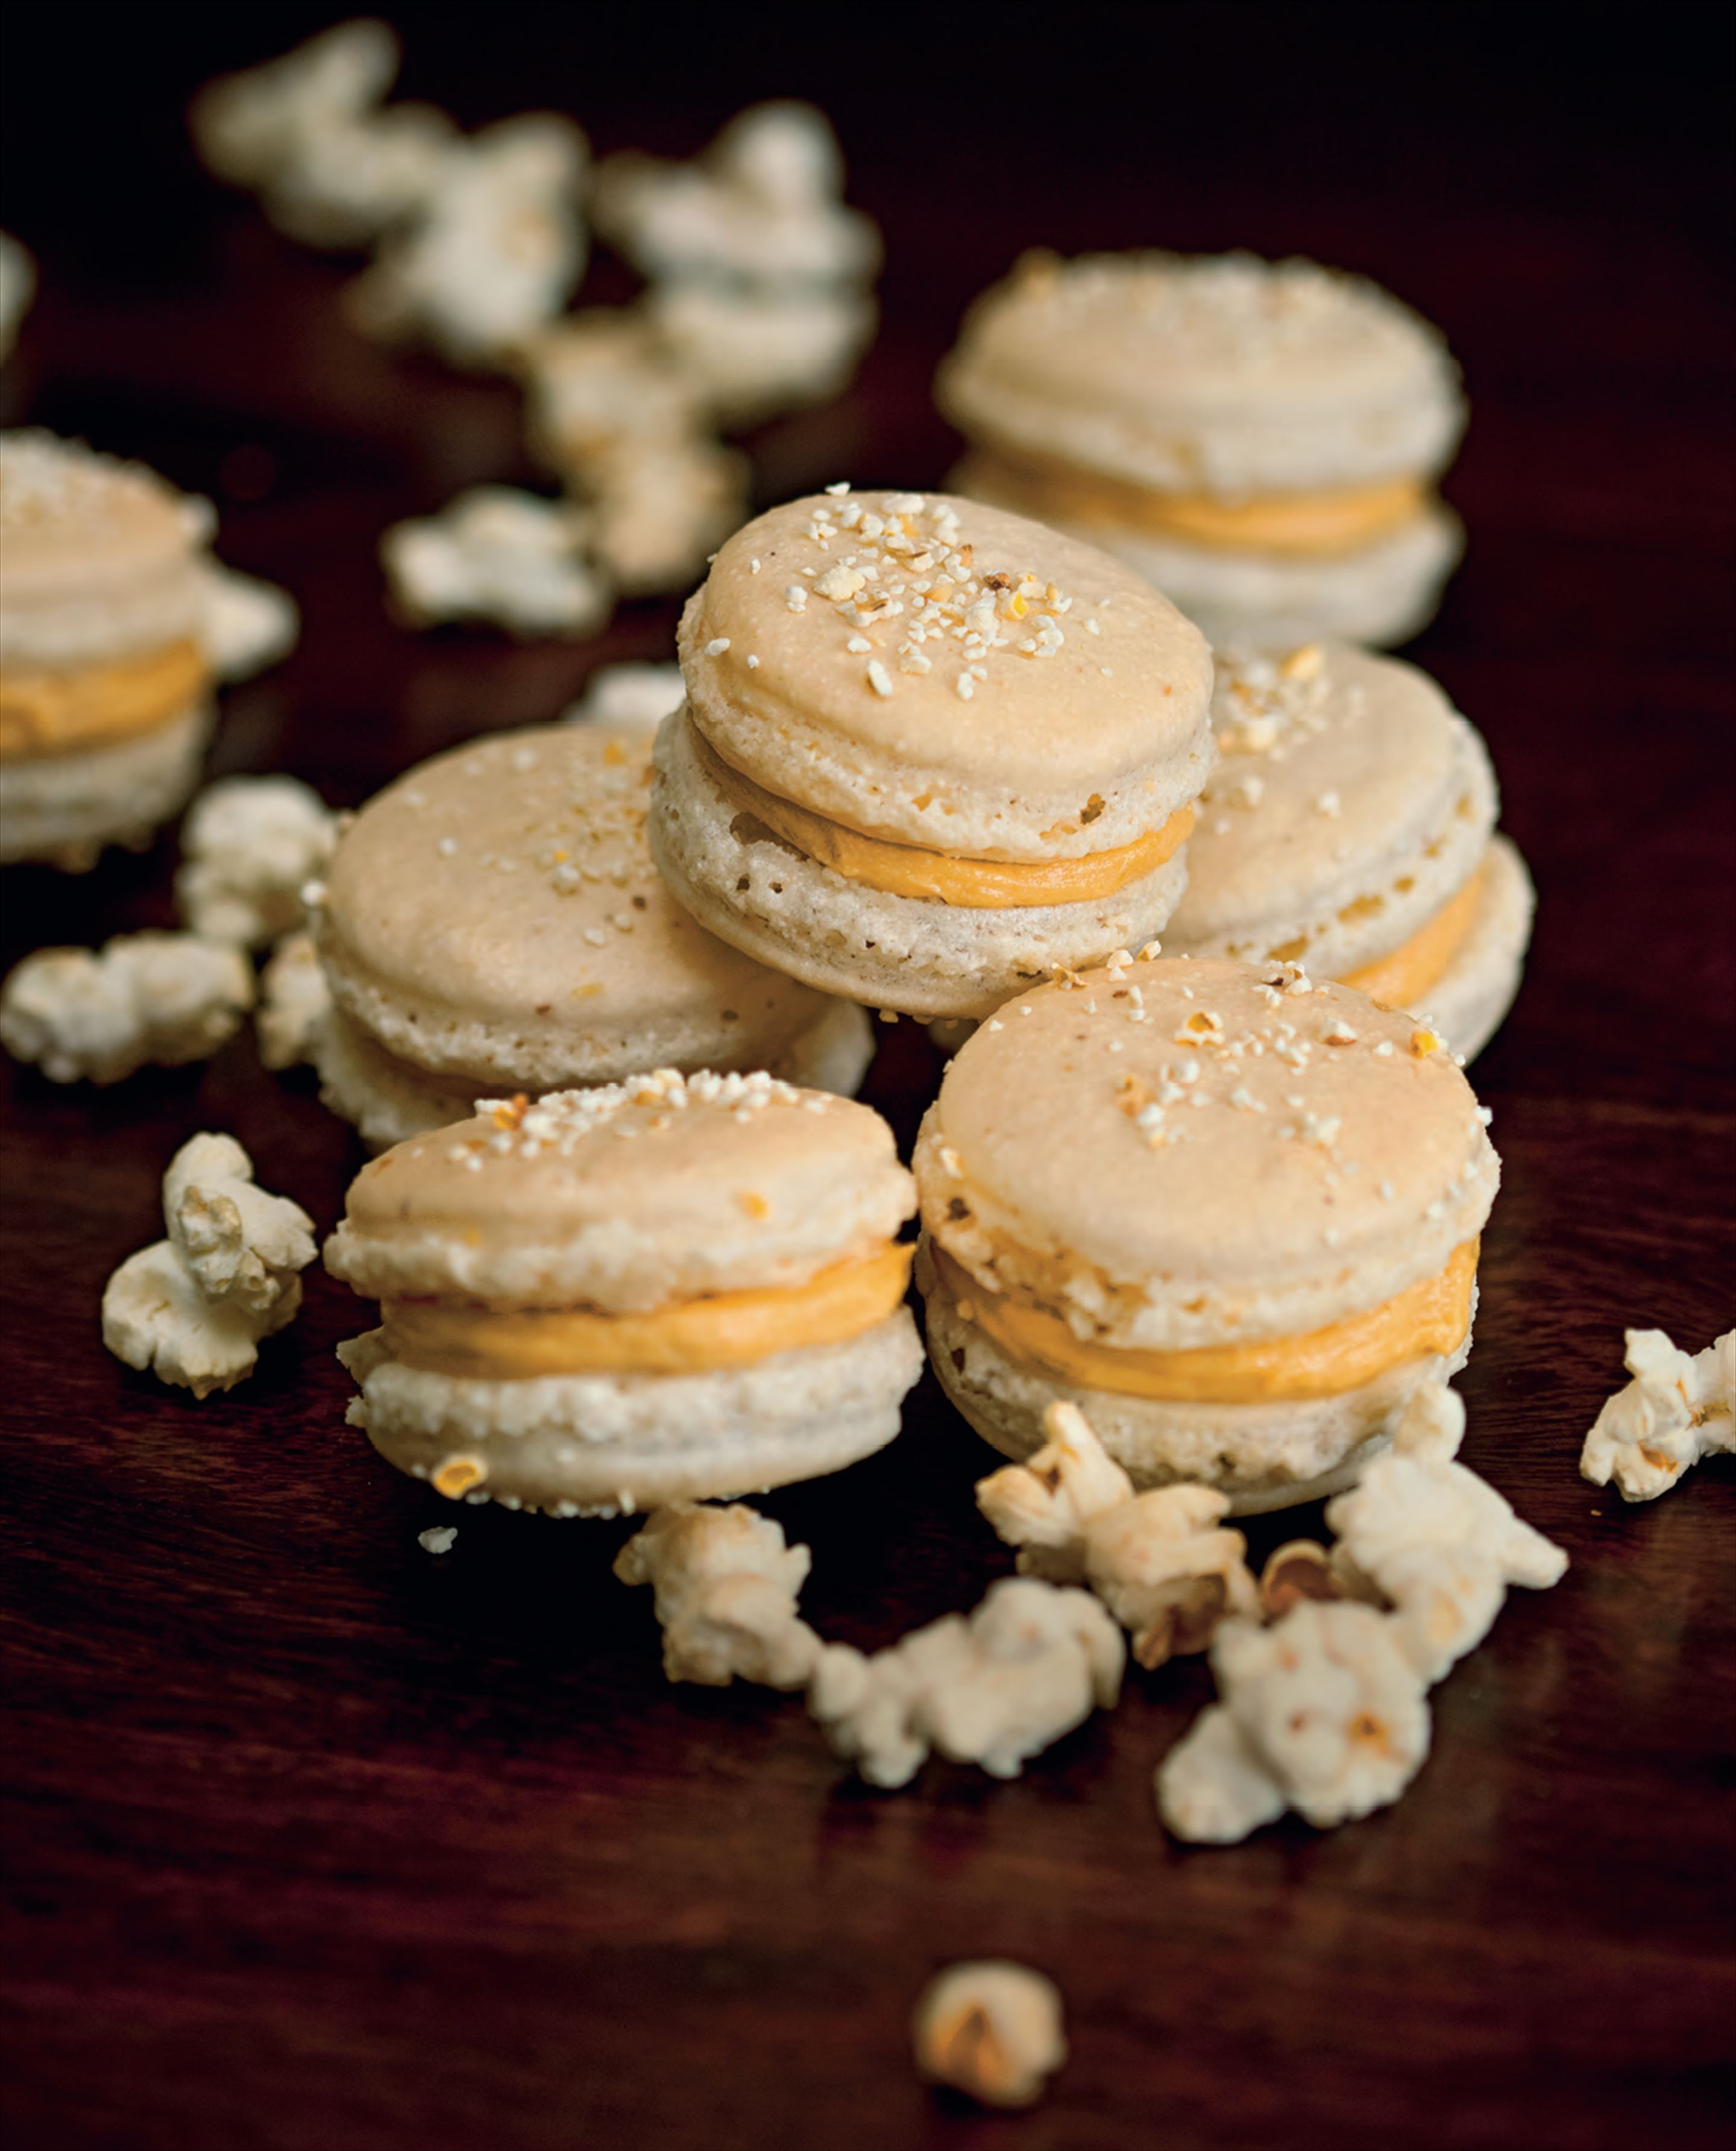 Popcorn and salted caramel macarons